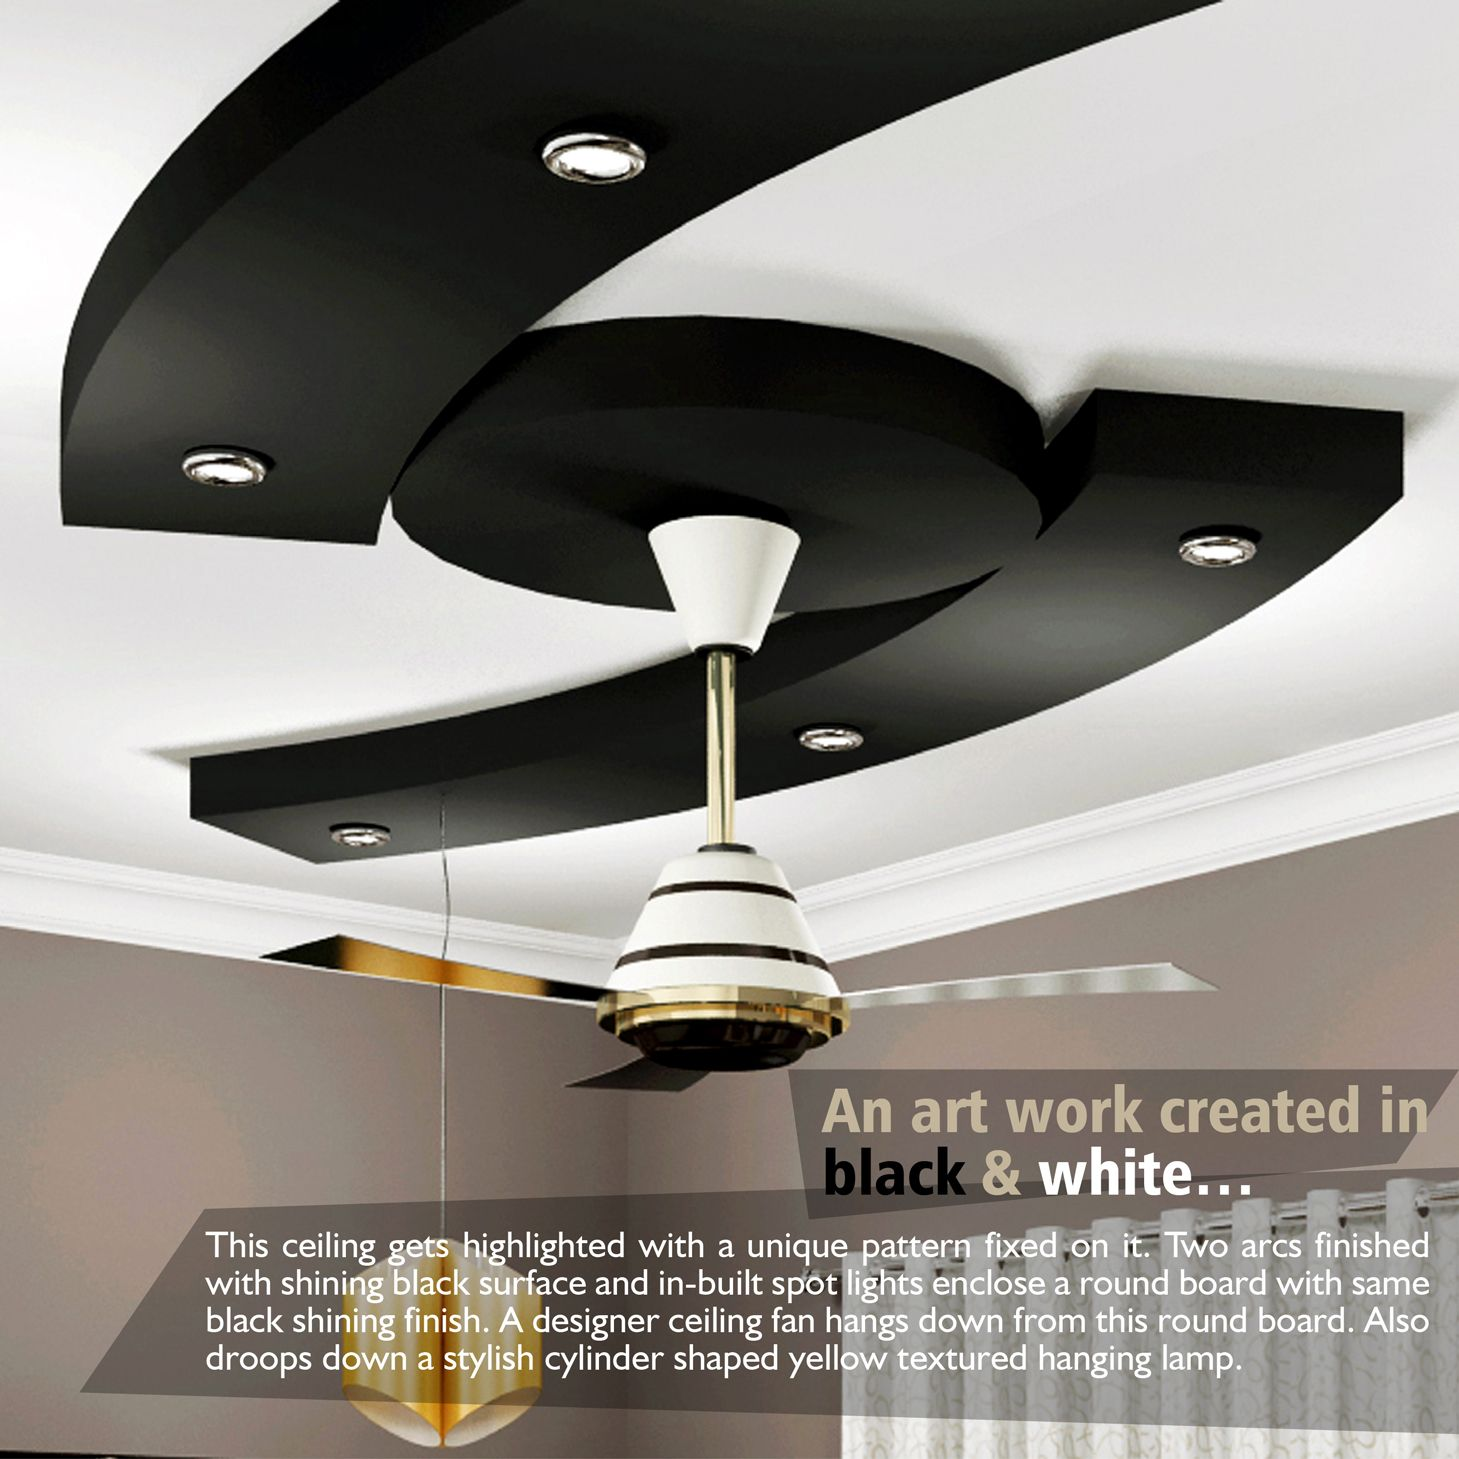 Black And White Ceiling DesignDesigns Bedroom False Nmn08w